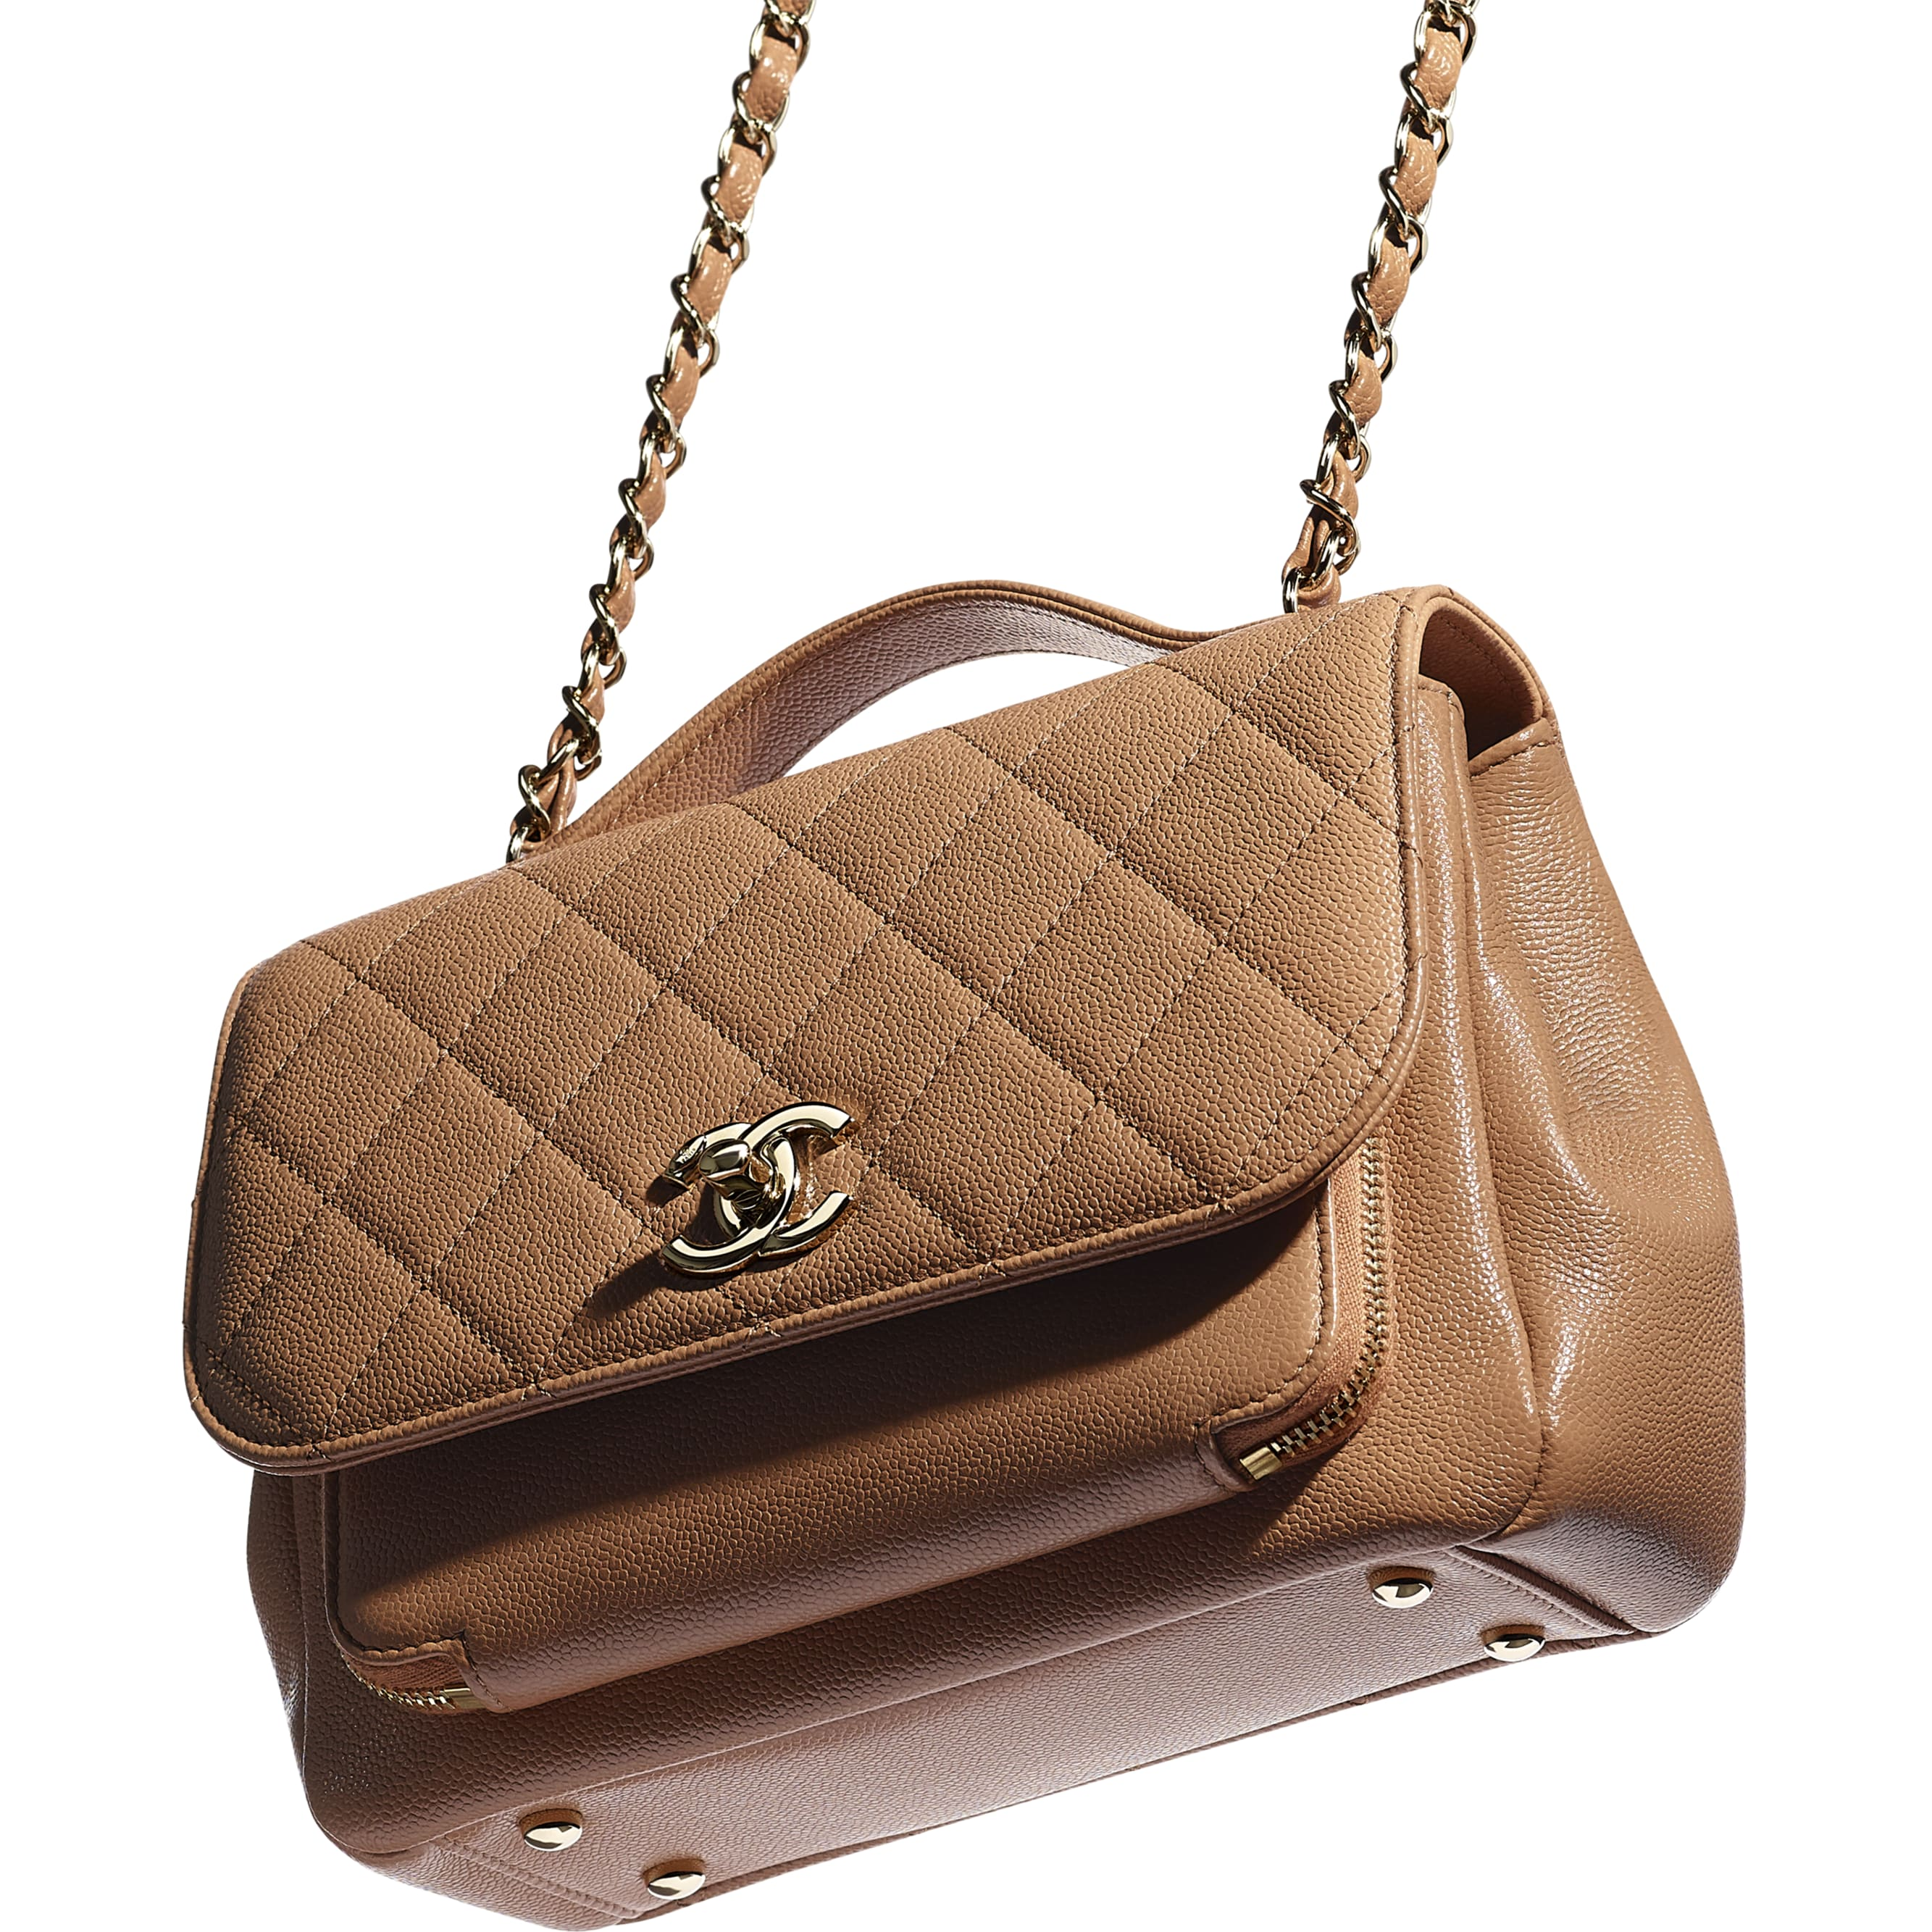 Flap Bag With Top Handle - Brown - Grained Calfskin & Gold-Tone Metal - CHANEL - Extra view - see standard sized version